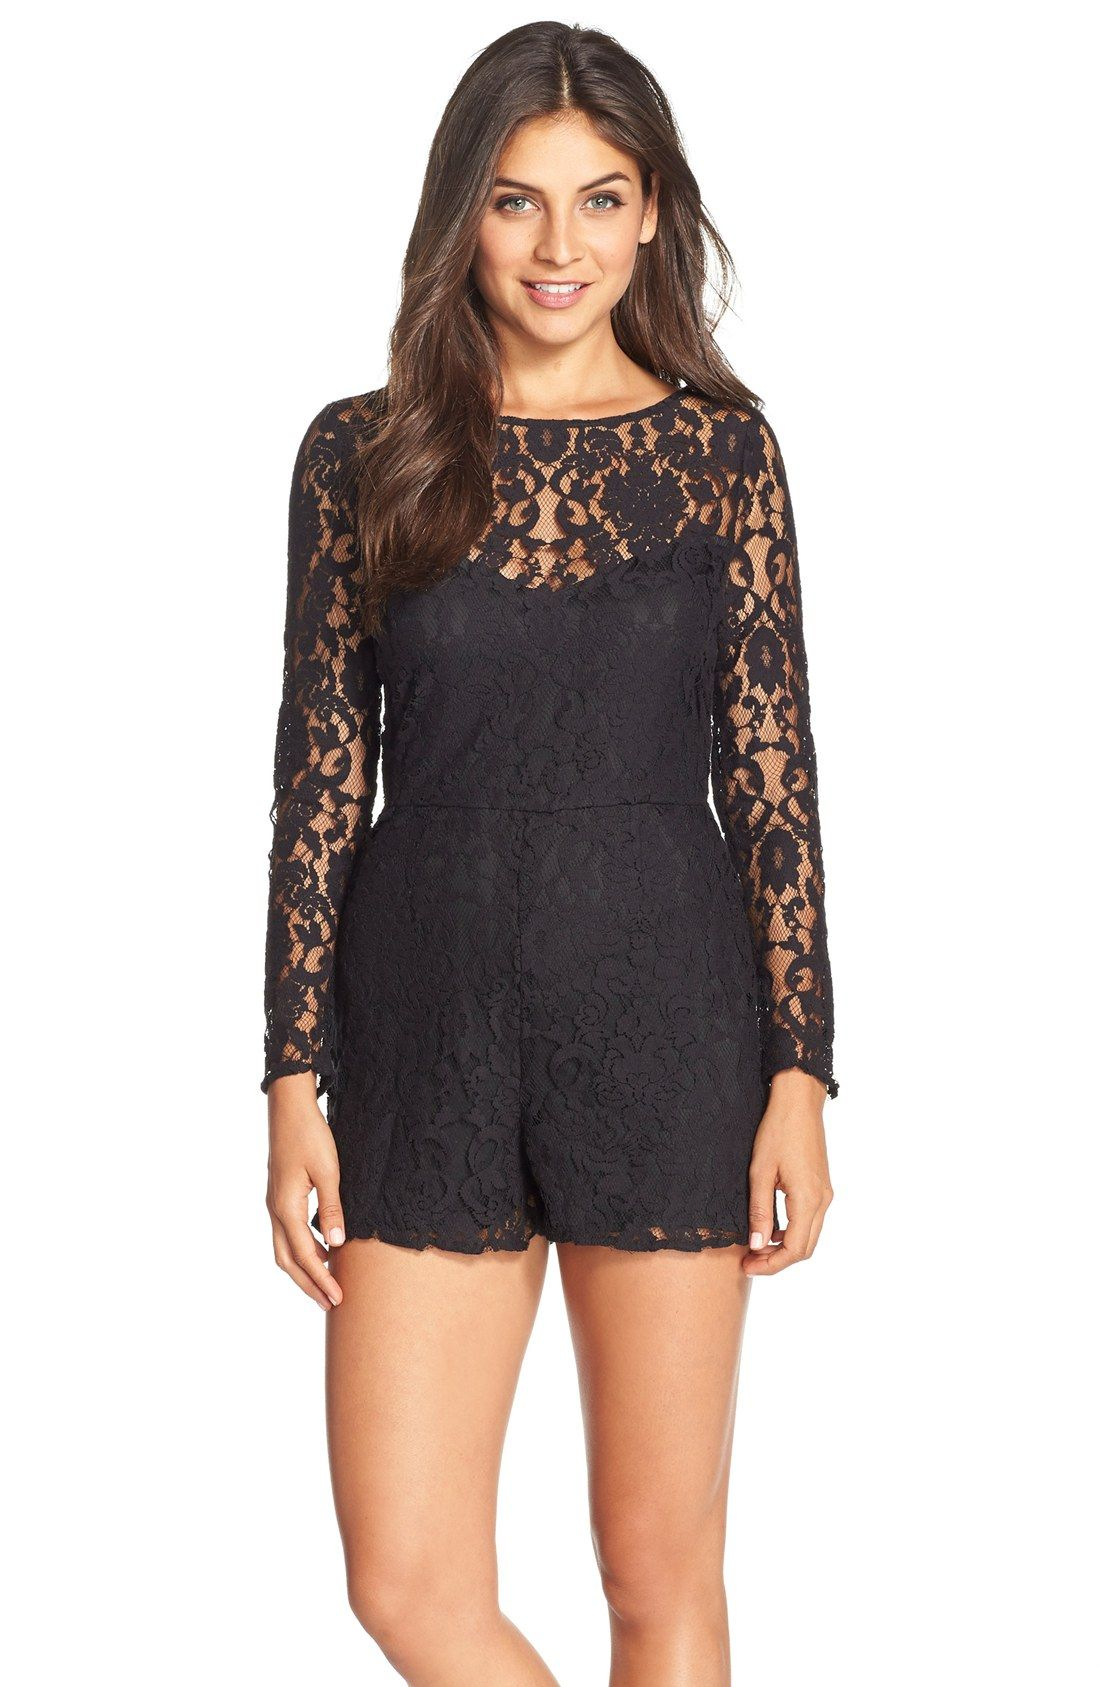 Shop for jumpsuits and rompers for women at multiformo.tk Find a wide range of women's jumpsuit and romper styles from top brands. Free shipping and returns.